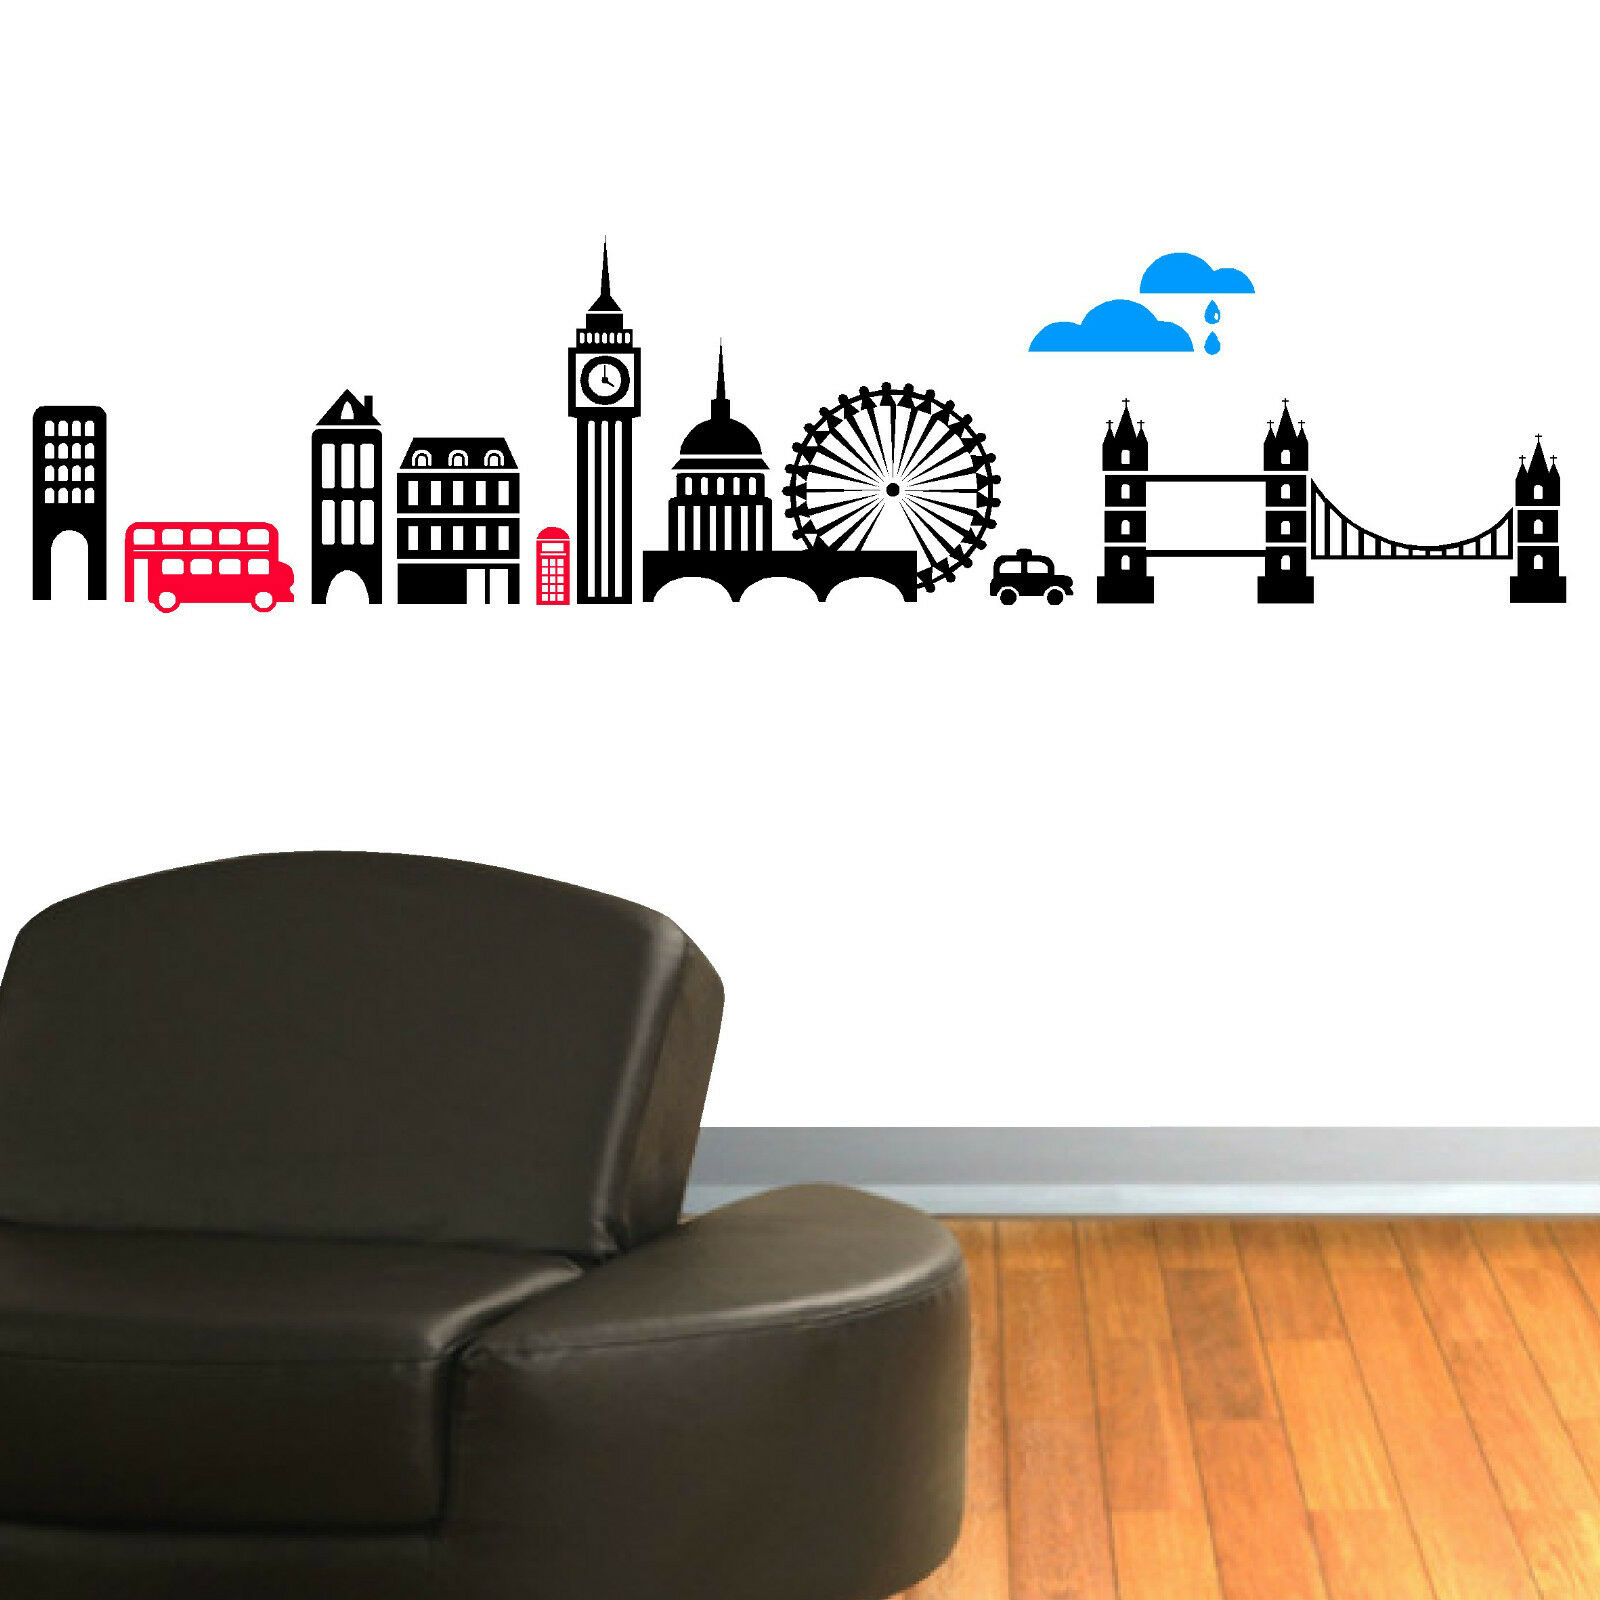 Wall Art Murals Vinyl Decals Stickers : London skyline vinyl wall art sticker decal mural